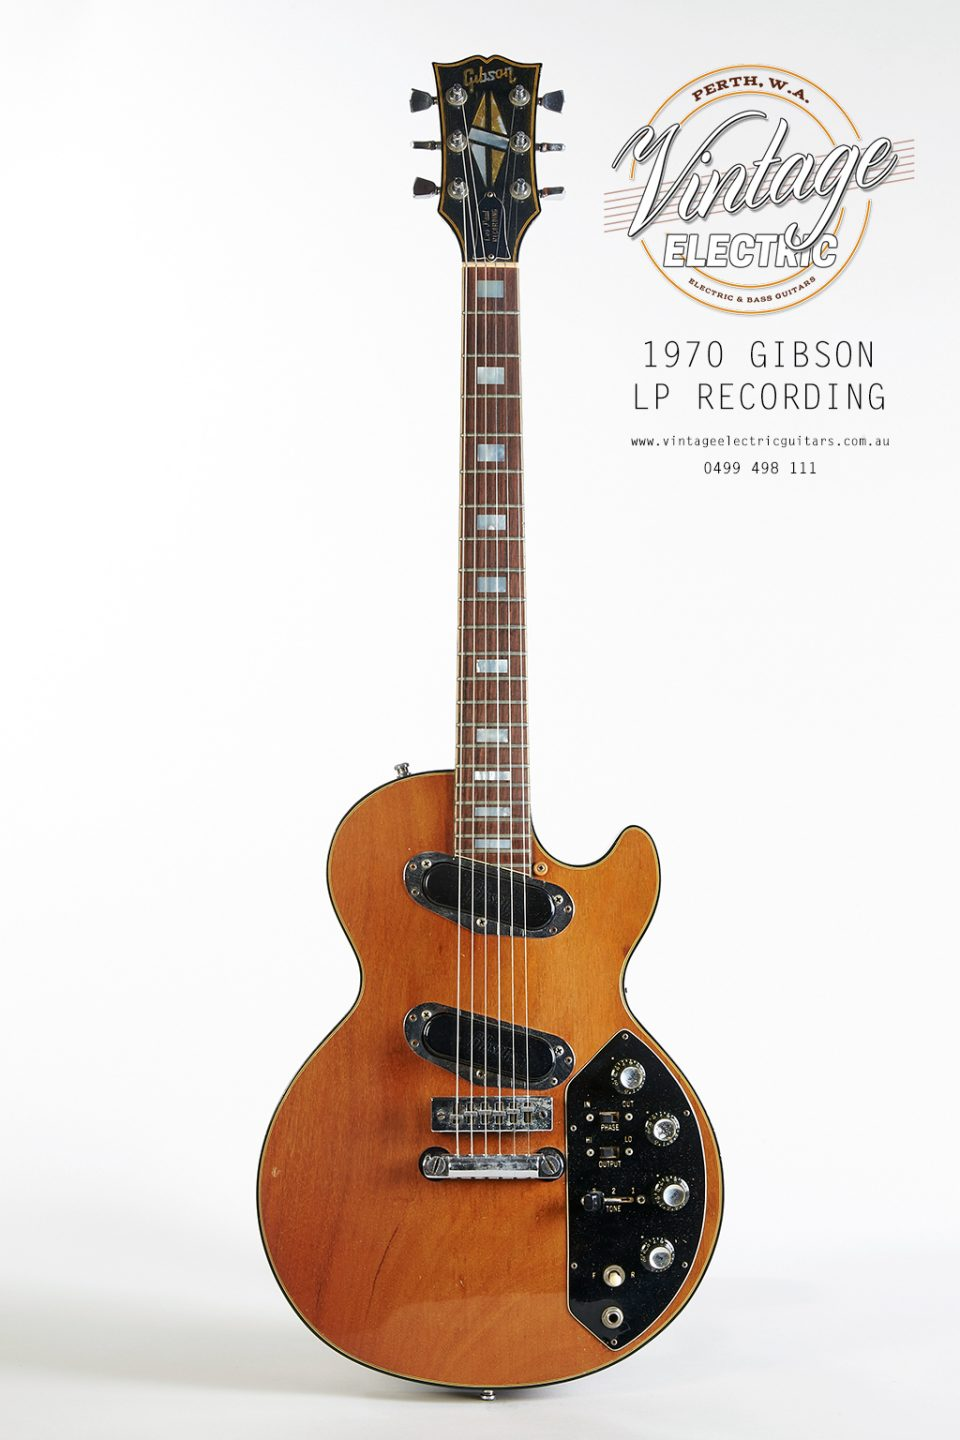 1970 Gibson Les Paul Recording Guitar